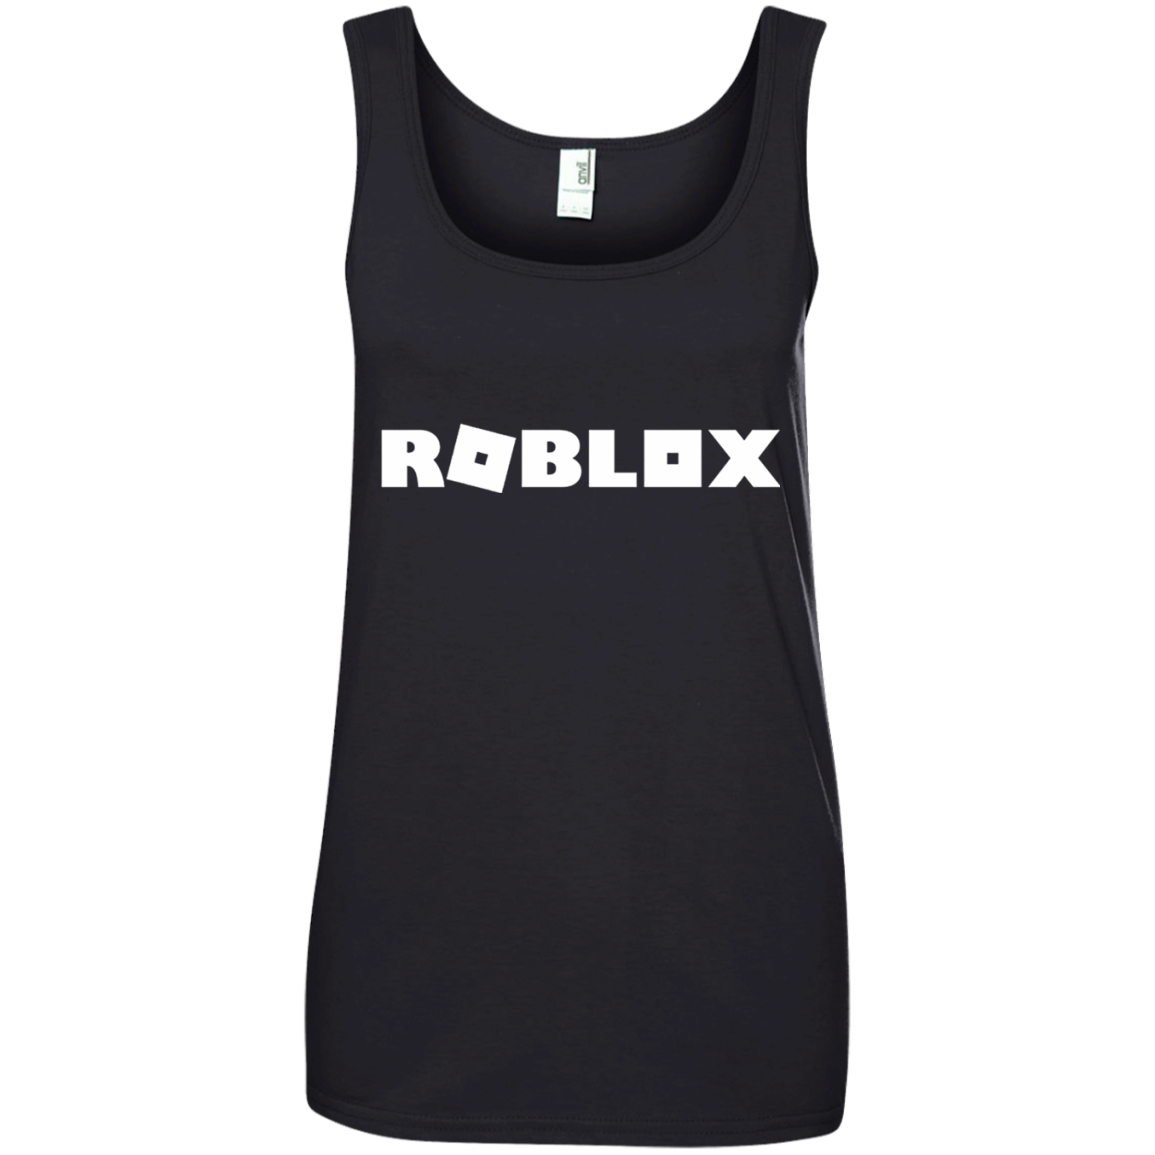 How To Make Vip T Shirt On Roblox - DREAMWORKS